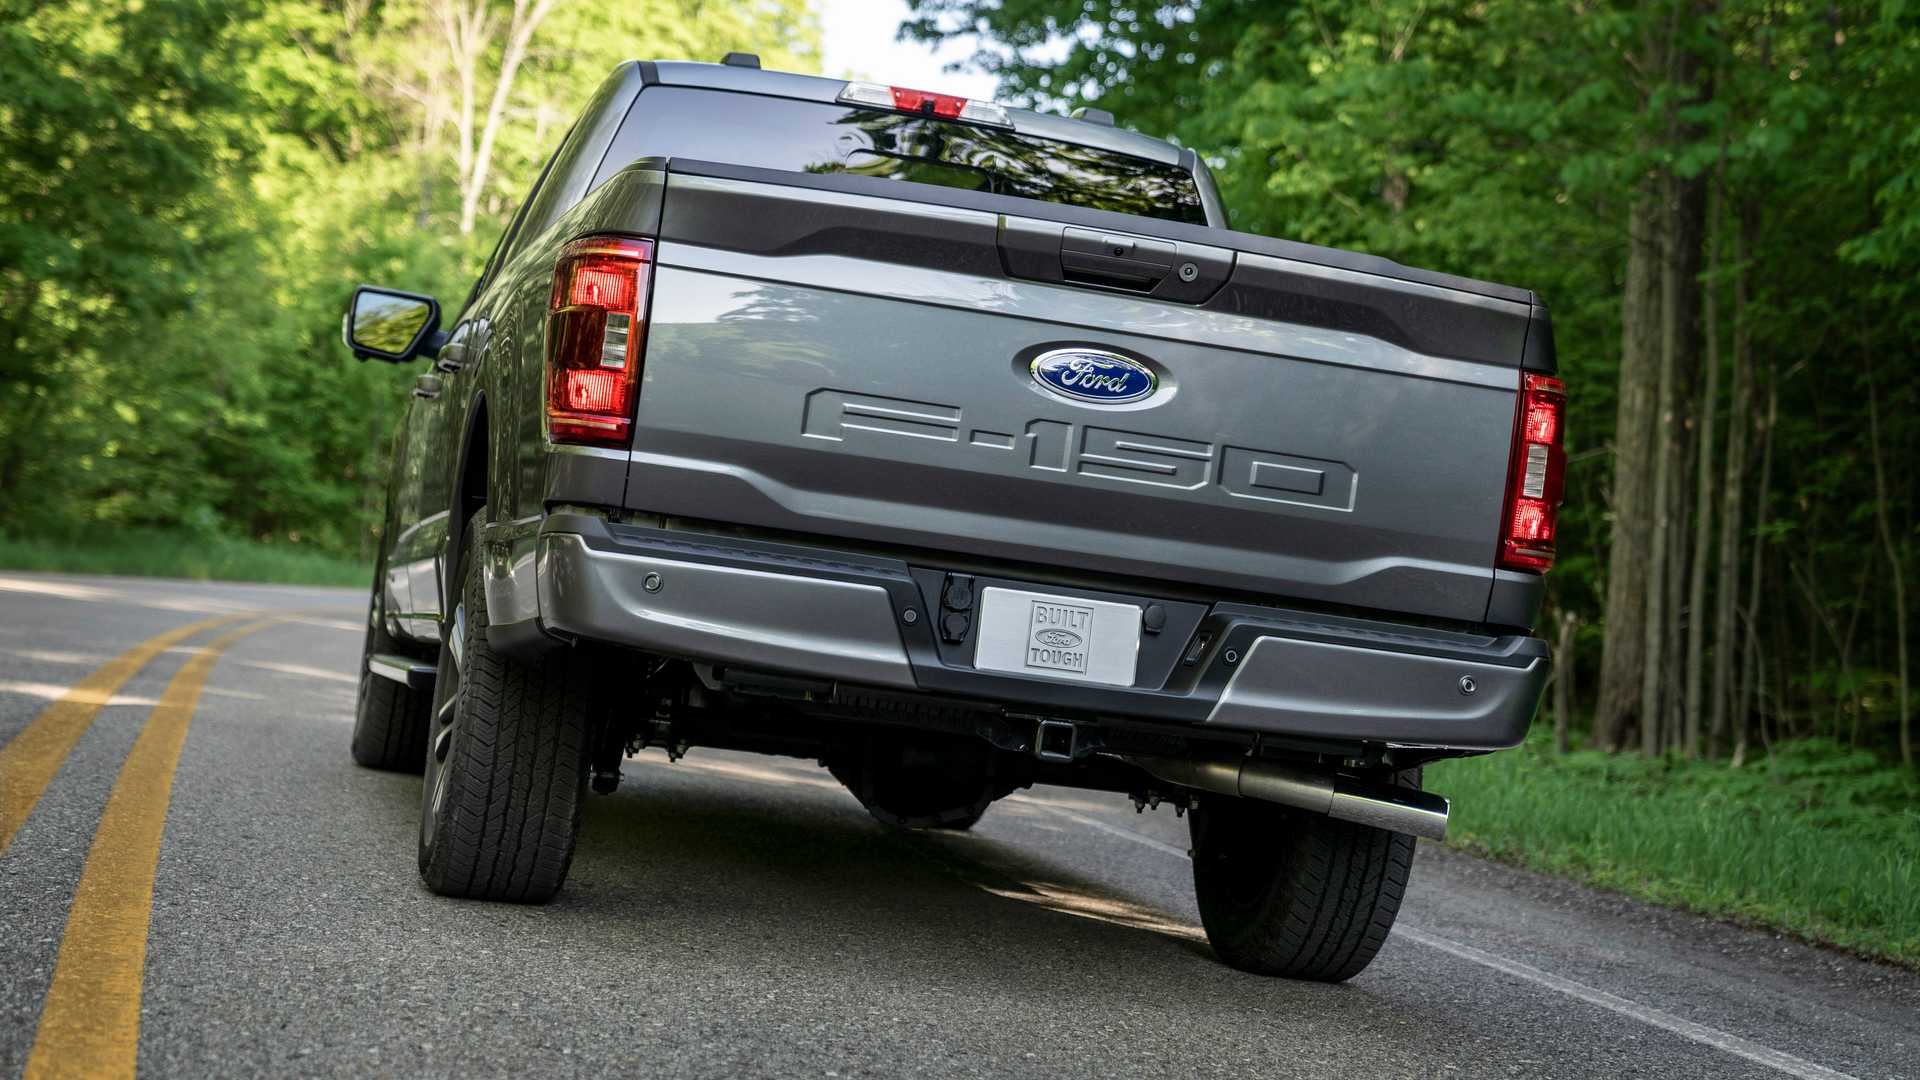 2021 Ford F-150 Keeps The V8 Due To Popular Demand